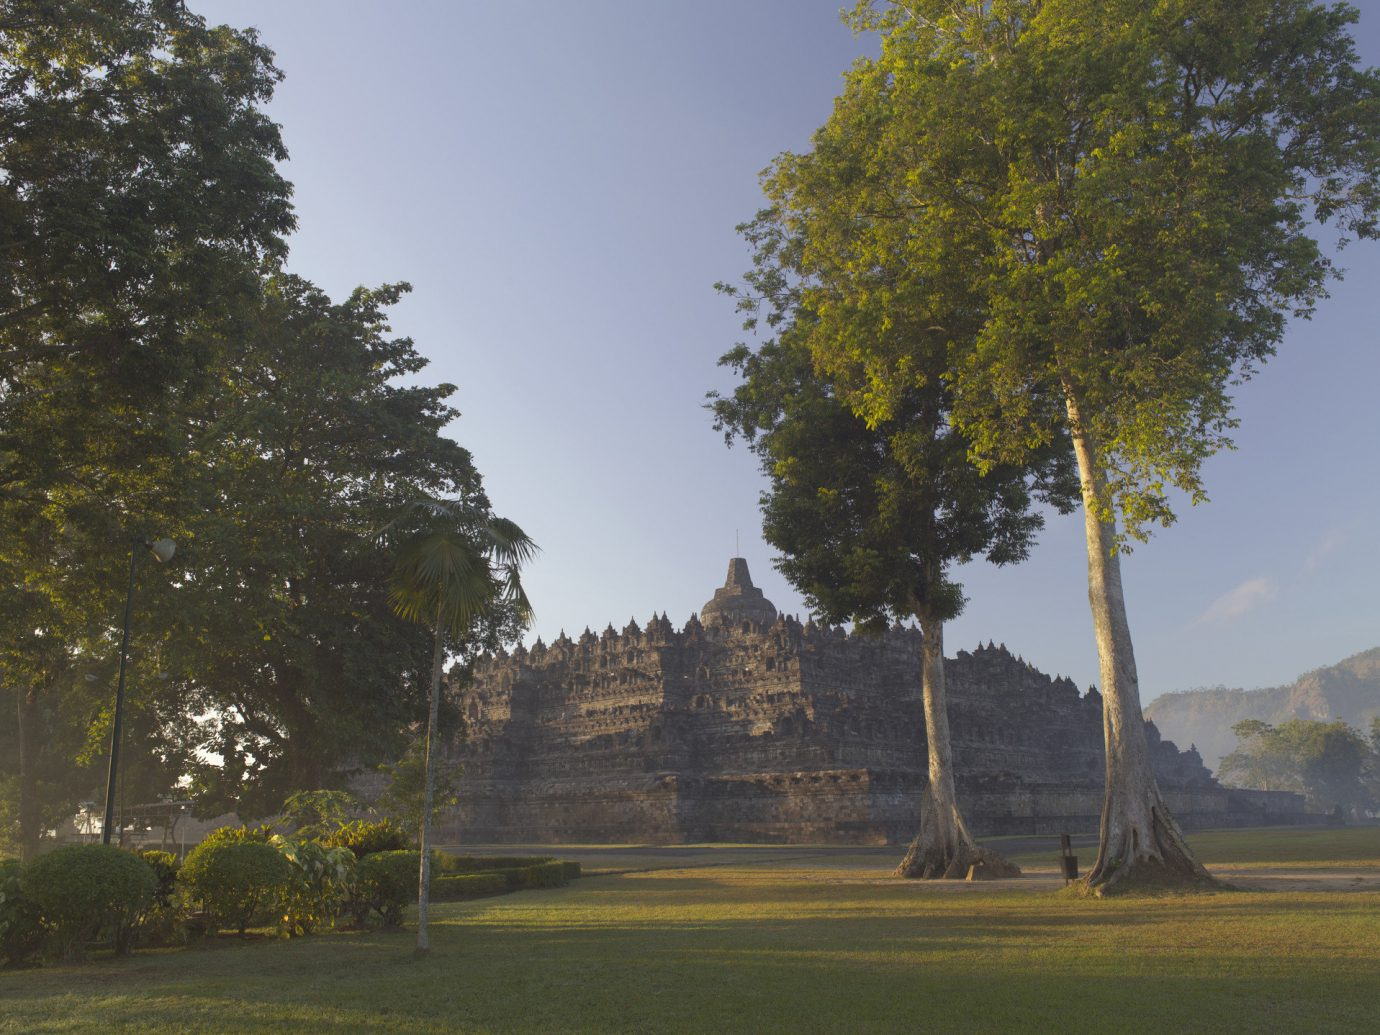 Trip Ideas tree outdoor grass plant woody plant hill Ruins rural area estate landscape monument temple day